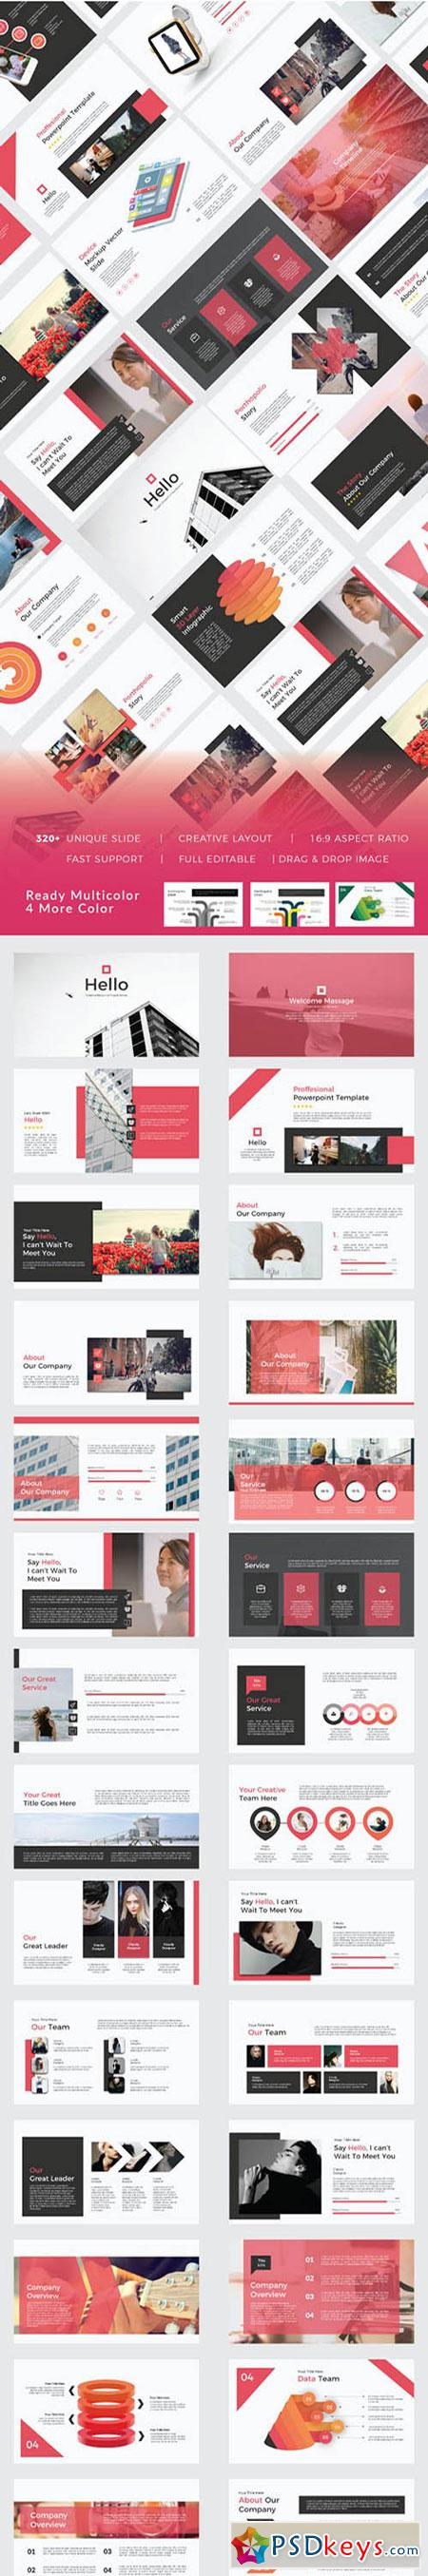 Hello Creative Design For Your Business, Keynote and Google Sliders